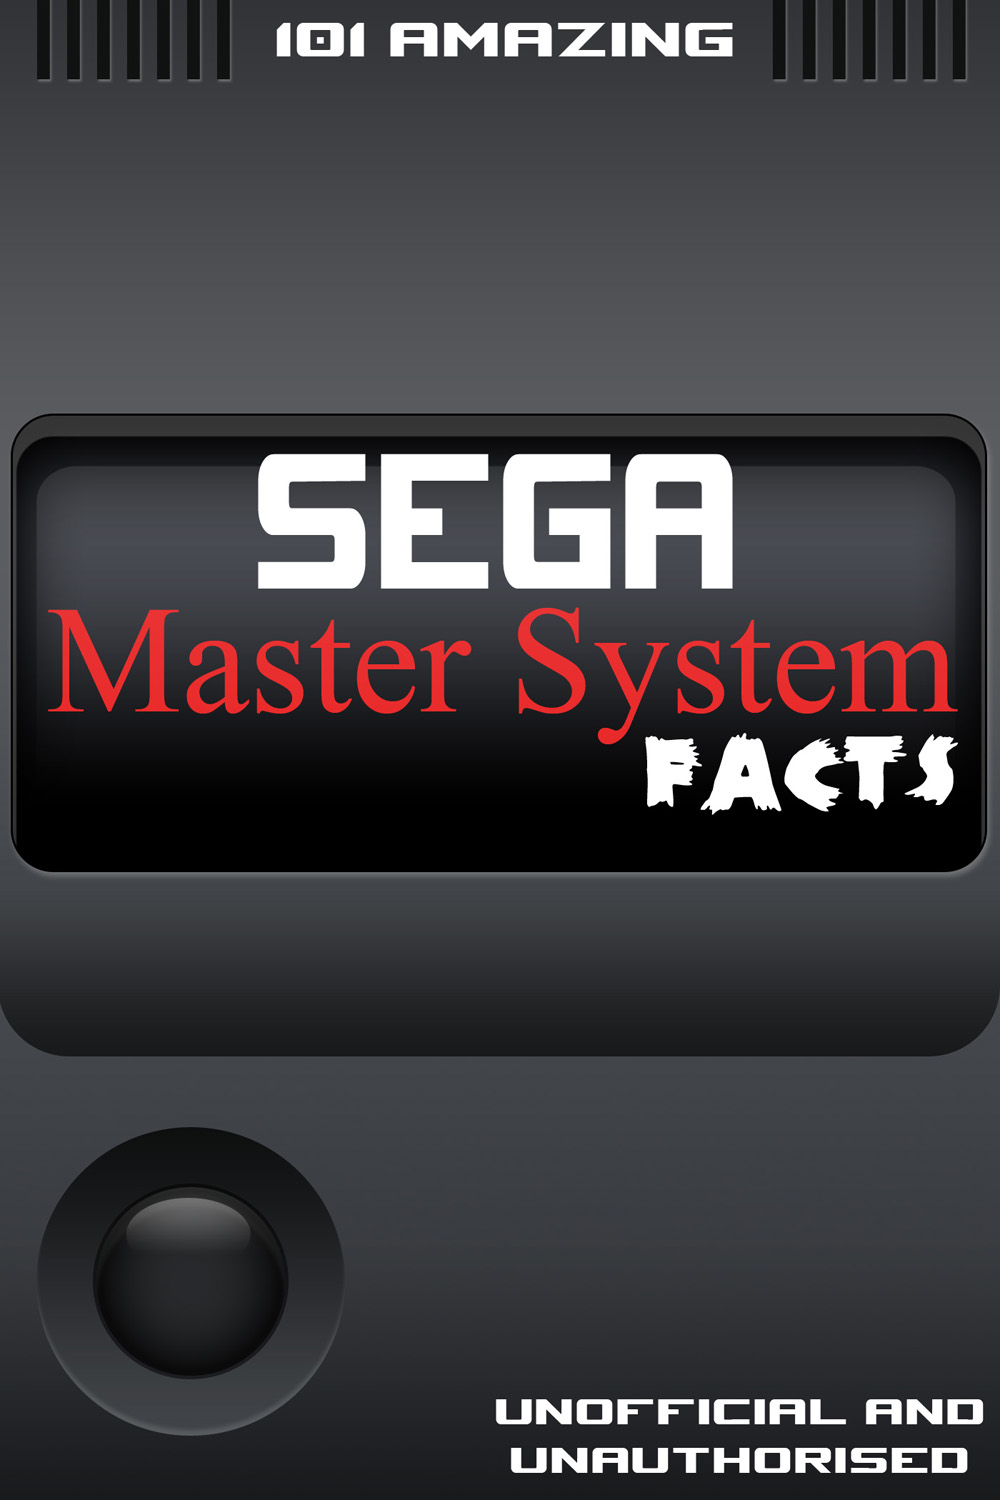 101 Amazing Sega Master System Facts